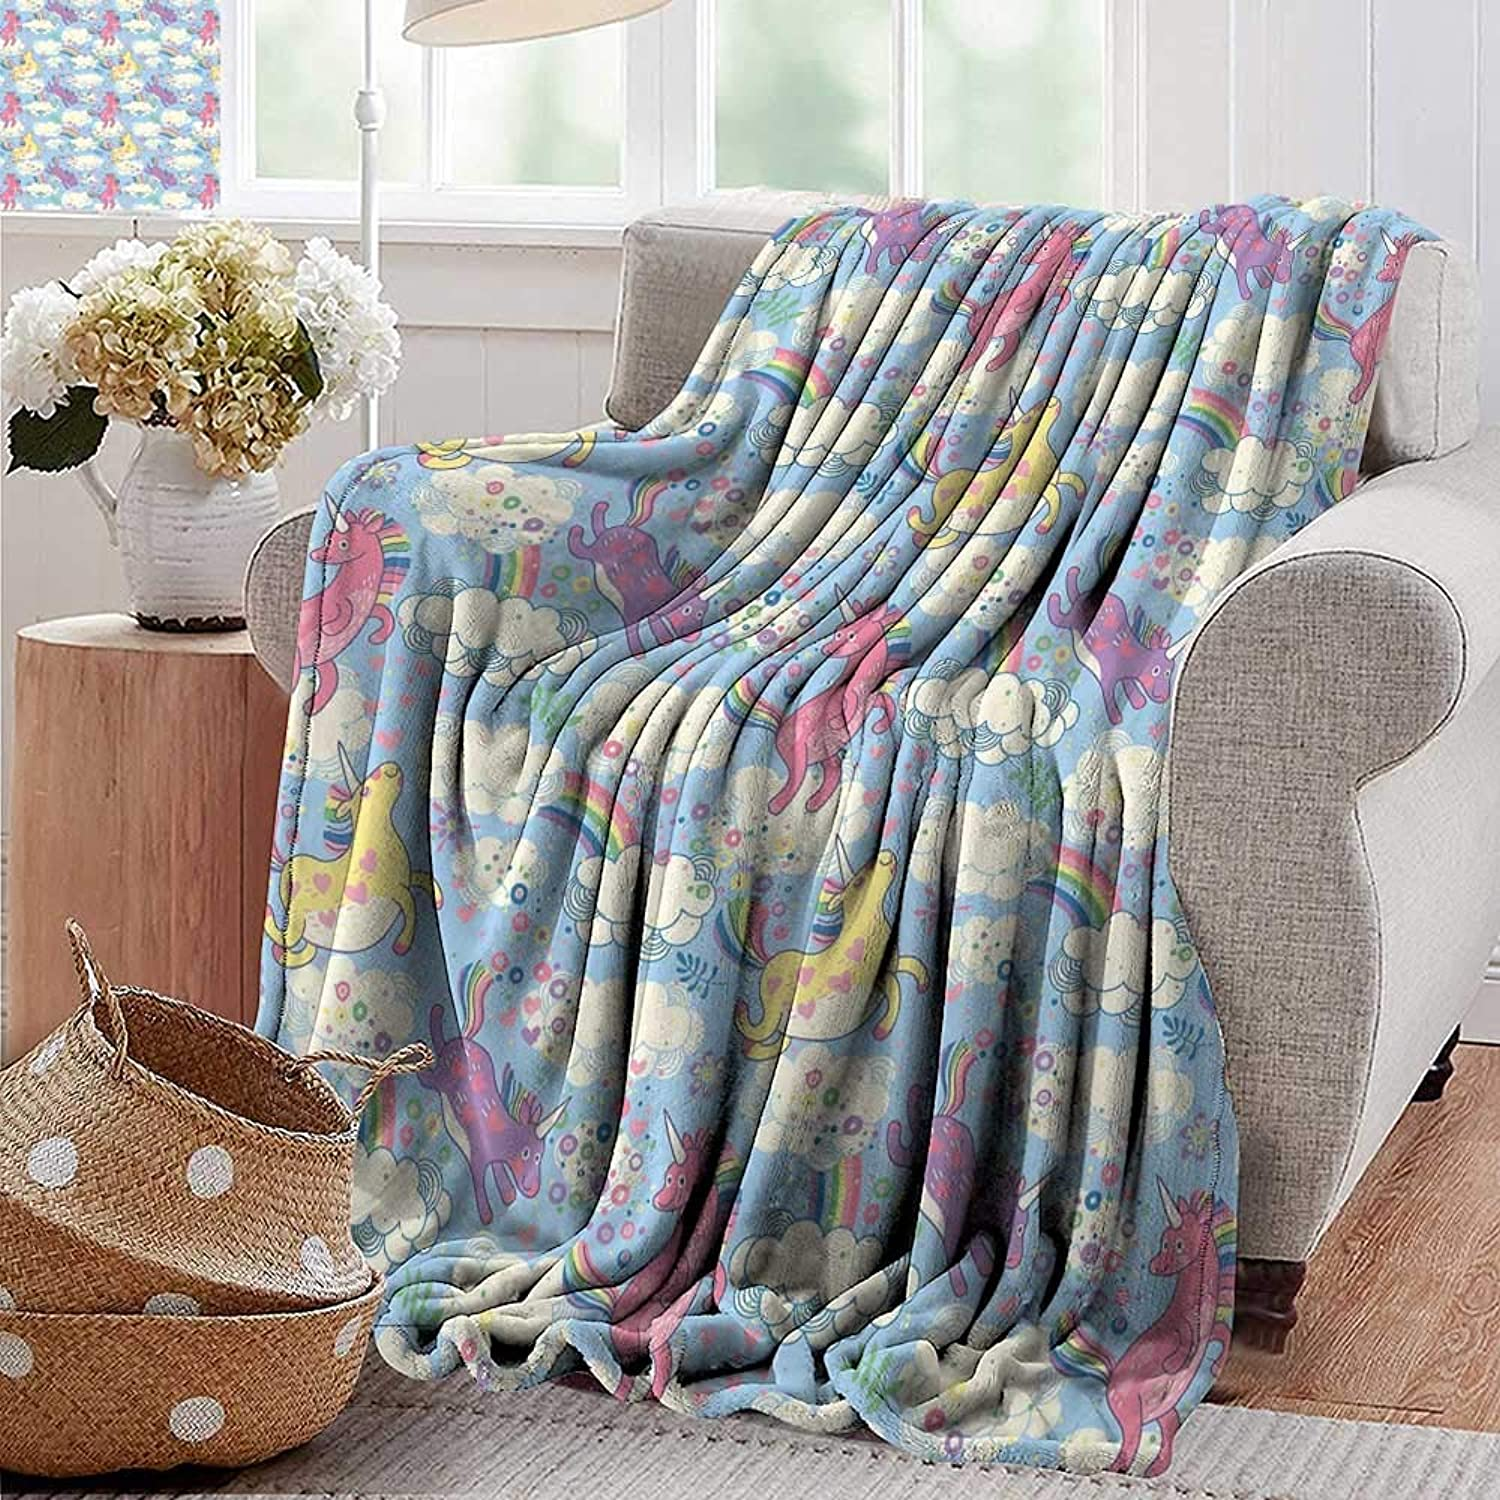 PearlRolan Throw Blanket,Rainbow,Cute Unicorns on The Sky with Rainbows Pouring from Cloud to Cloud Girls Print,Multicolor,Sofa Super Soft, Plush, Fuzzy Microfiber Throw Reversible,Comfy 35 x60